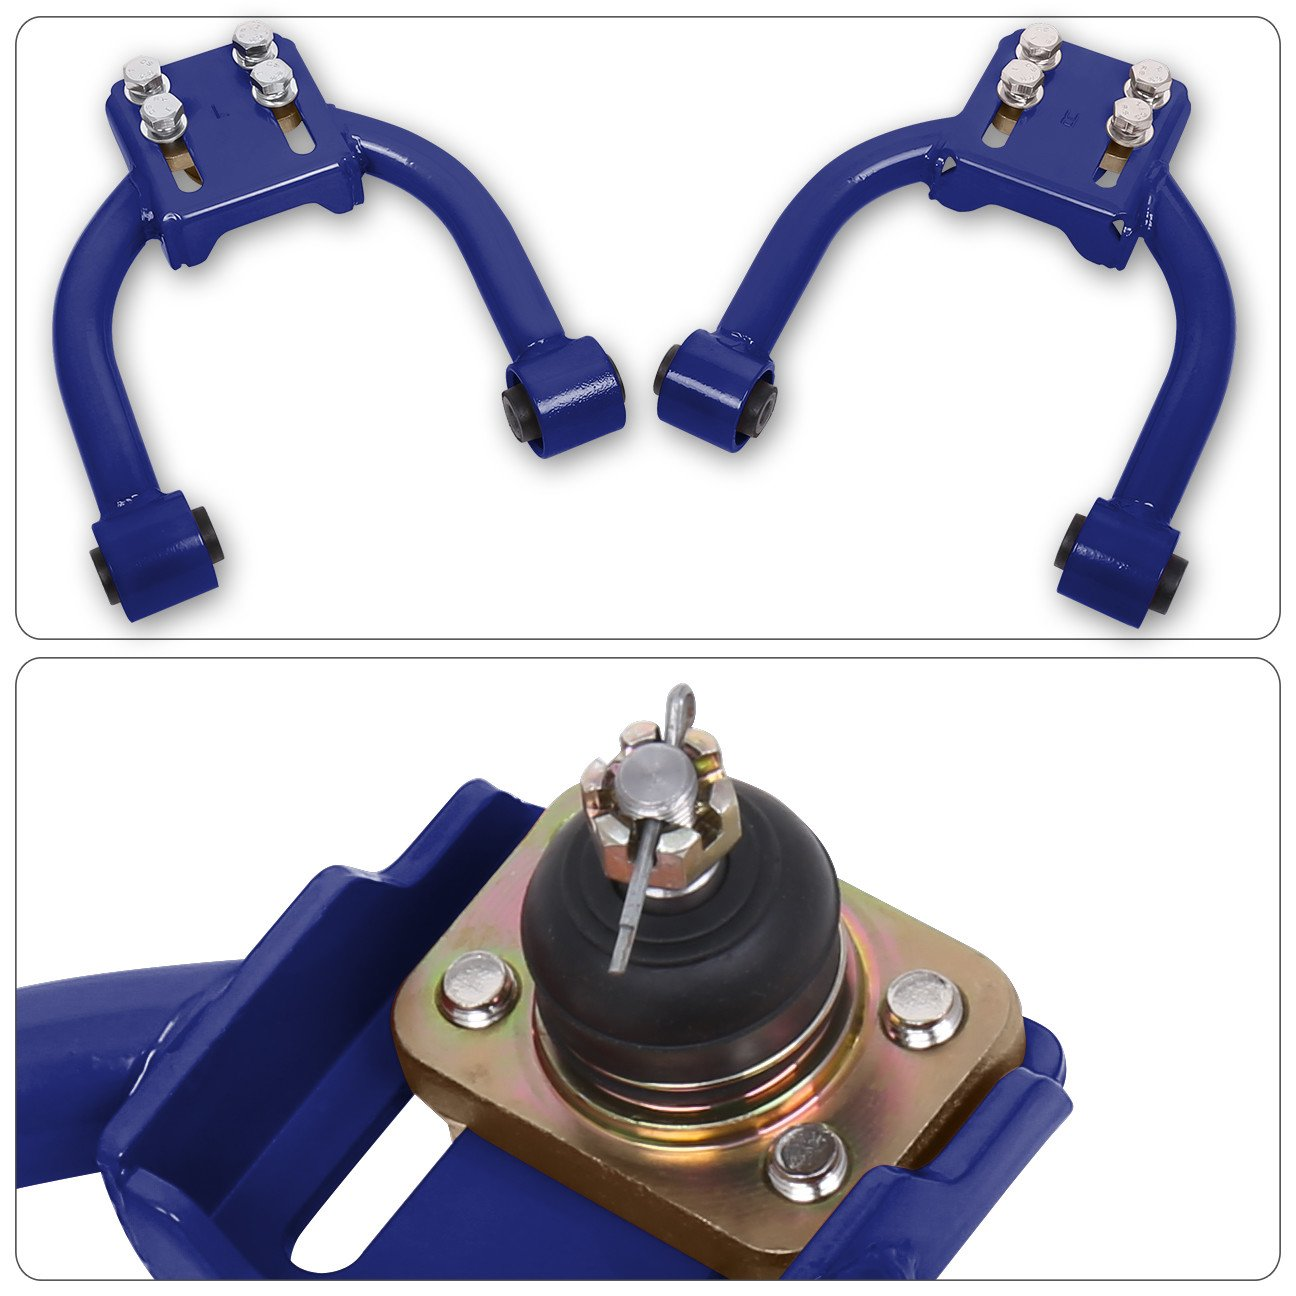 AJP Distributors Blue Front Upper Camber Kit For Honda Civic Ej6 Ej7 Ej8 Em1 Ej6 Ek1 Ek2 Ek3 Ek4 Ek9 Ej6 Ej9 Ek Assembly Suspension Performance Upgrade Stability Replacement